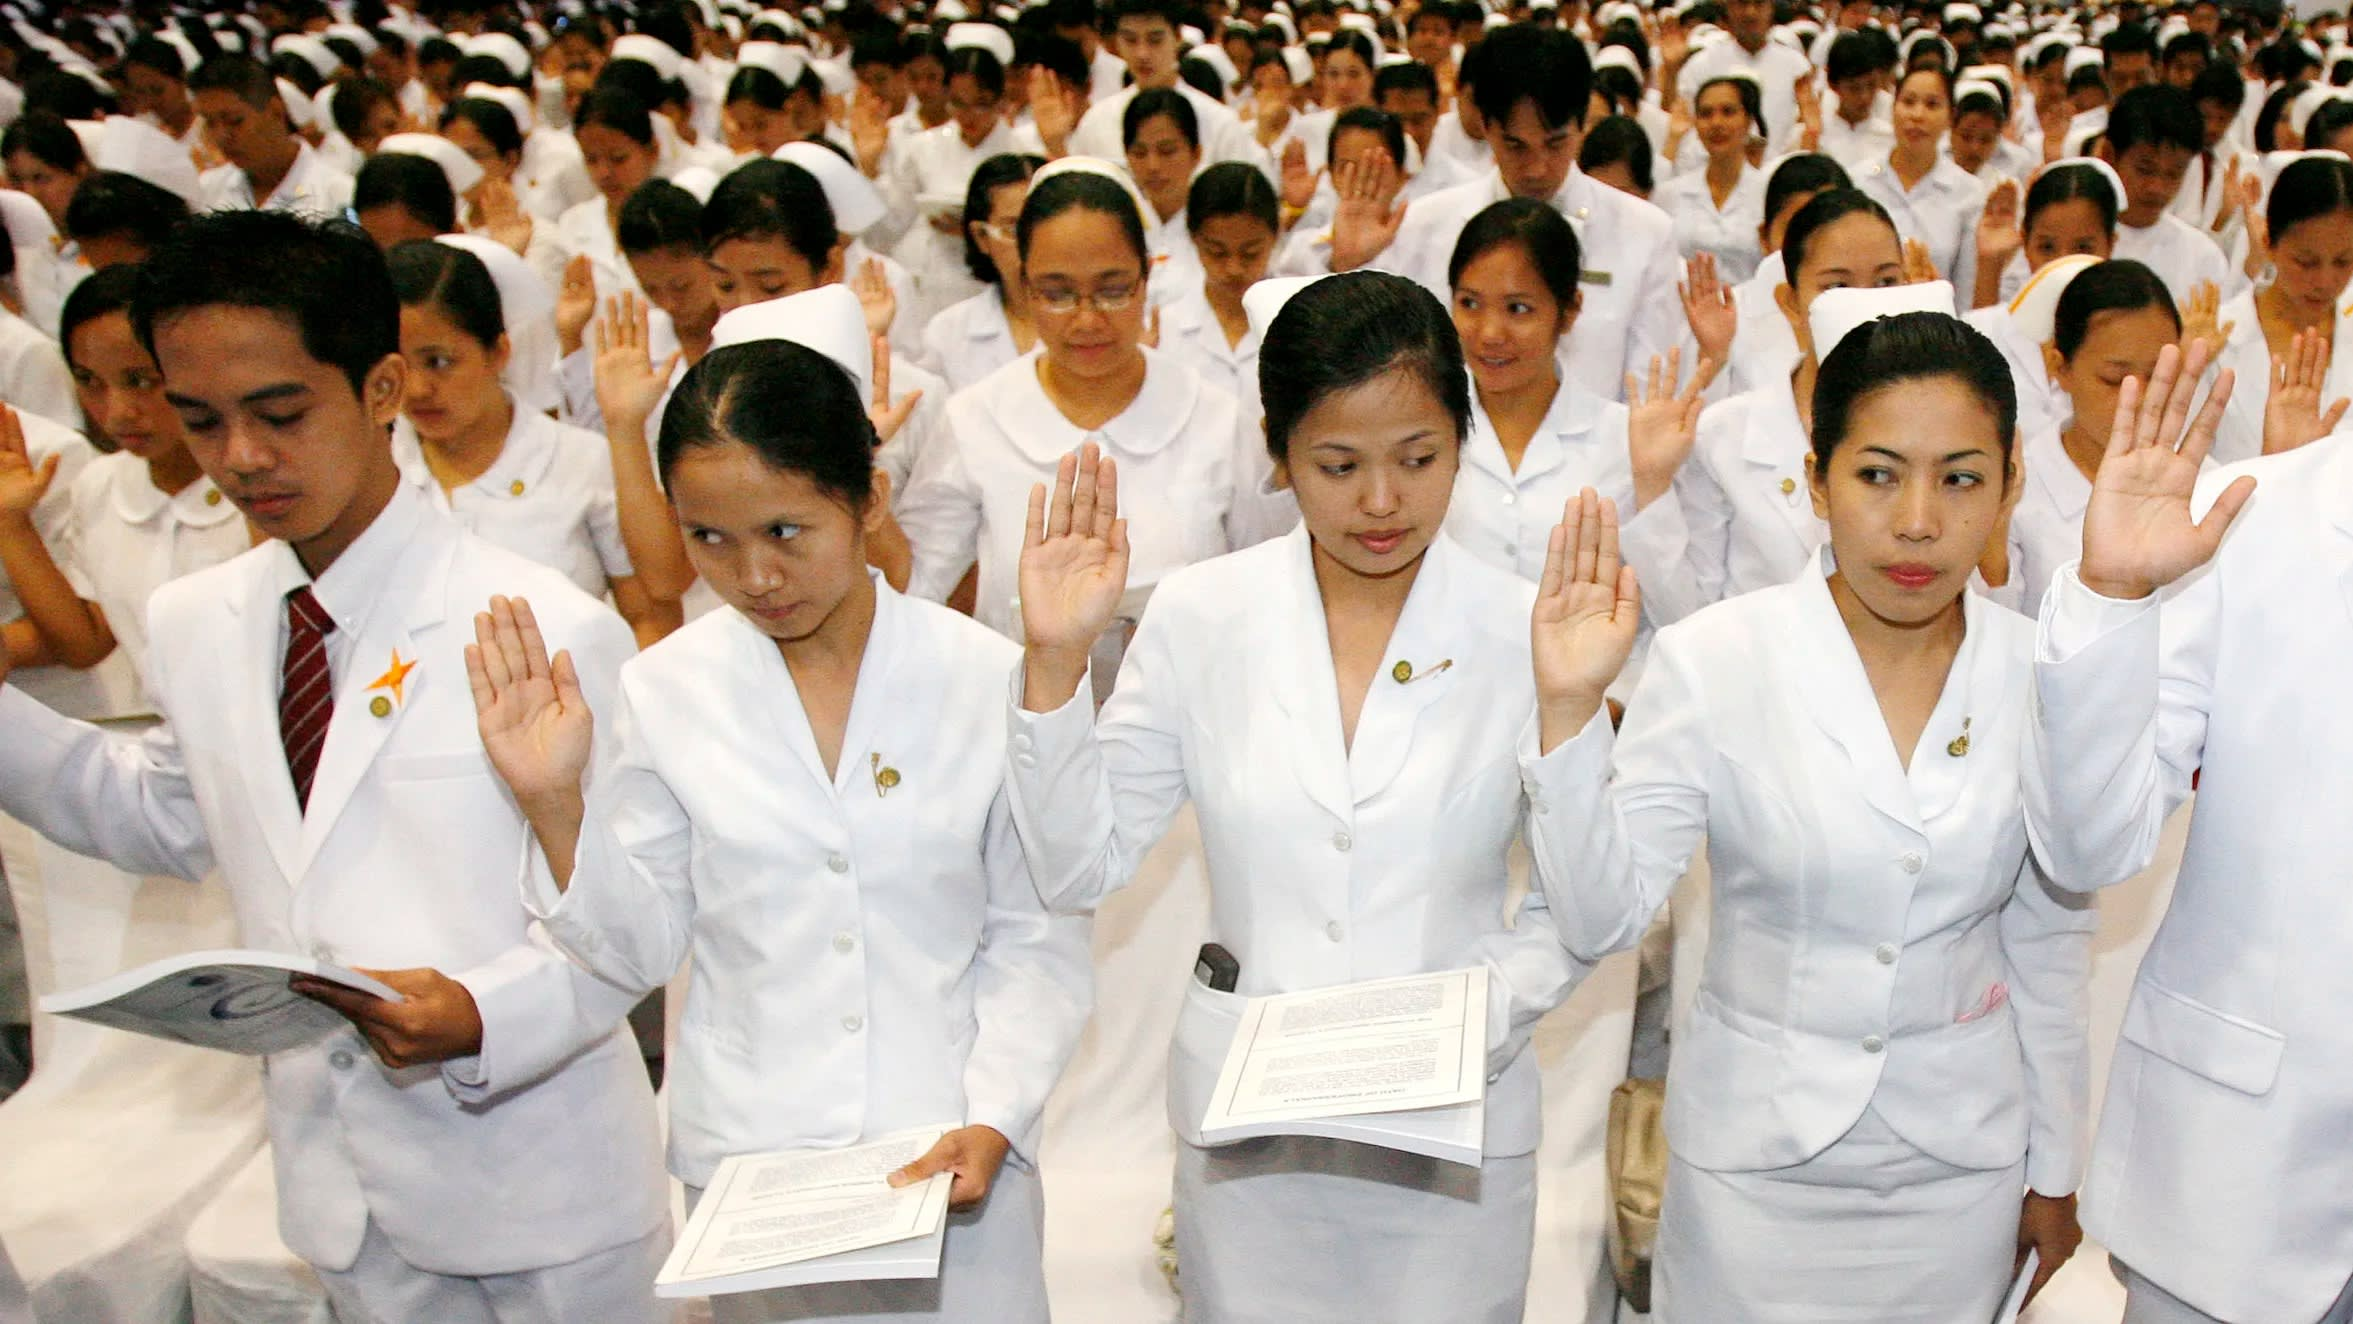 Nine Out Of 10 Largest Hospital Trusts Short Of Nurses >> Uk Turns To Asia For Nurses To Cover Staff Shortages Nikkei Asian